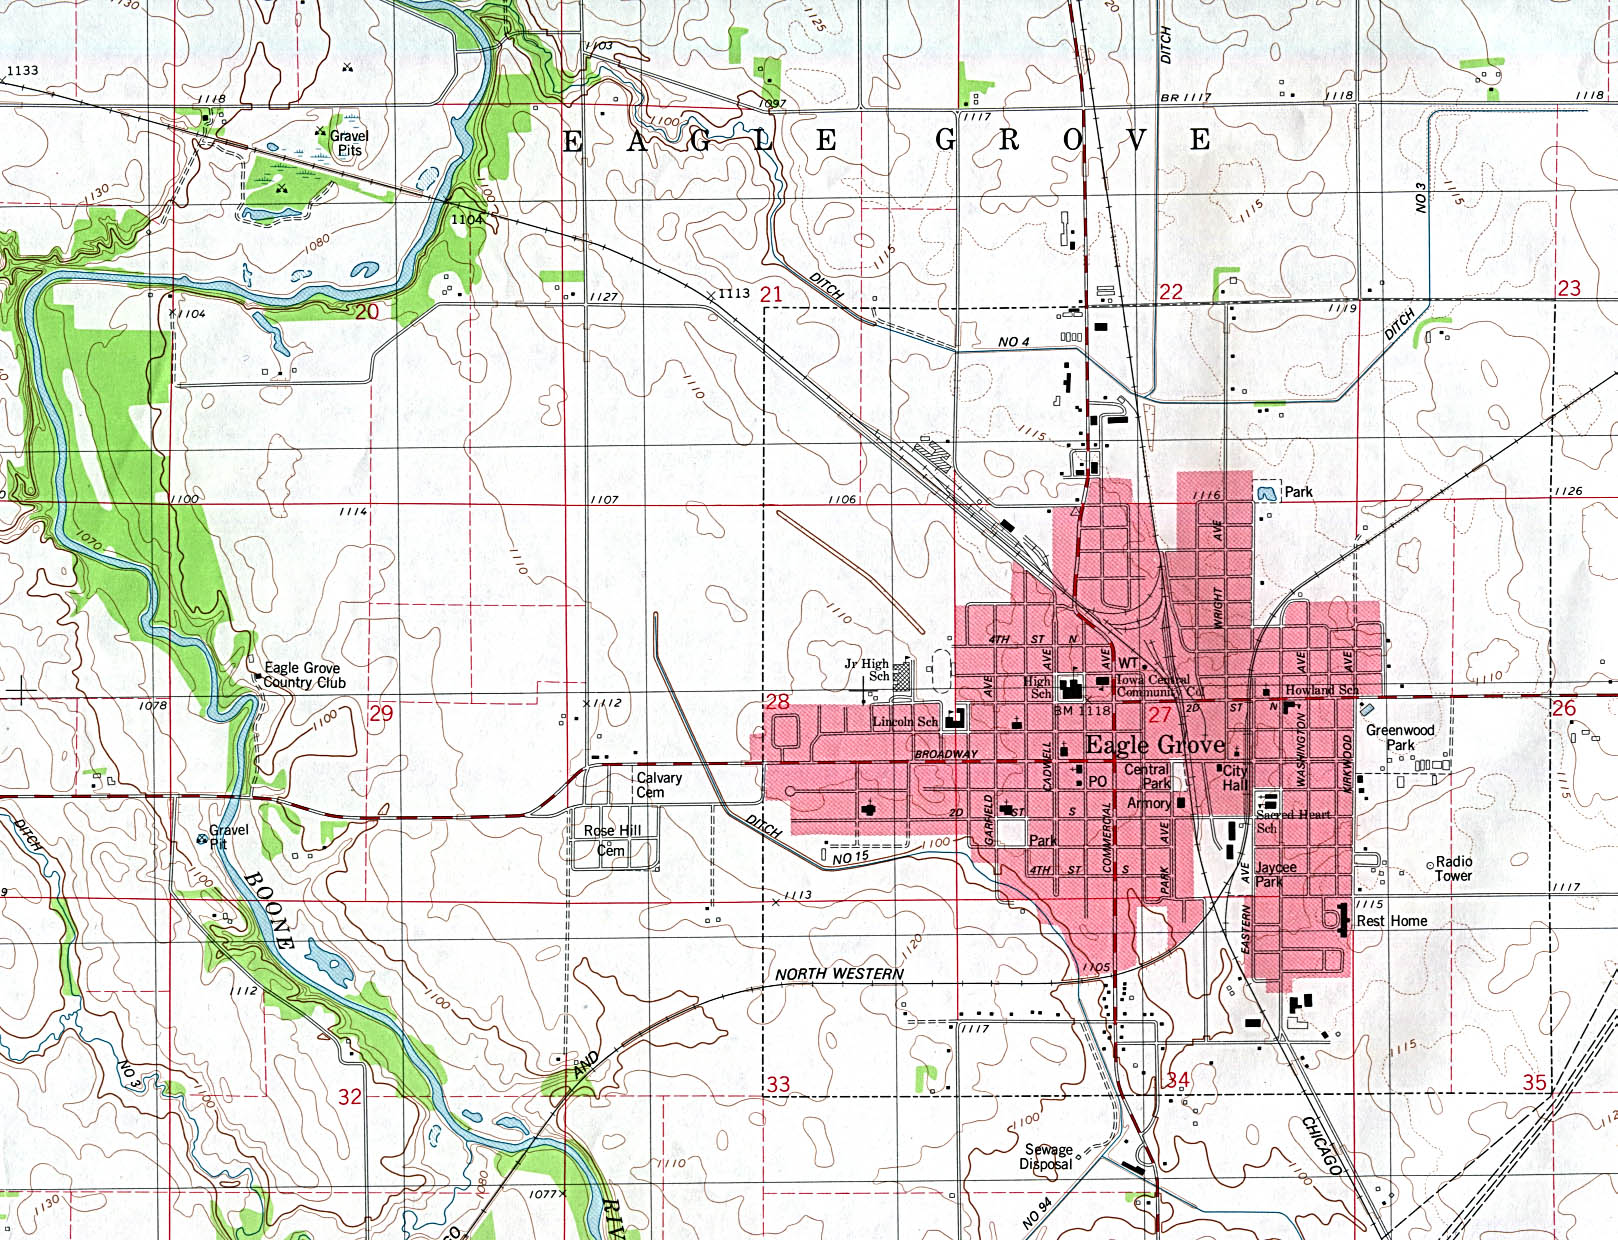 Eagle Grove Topographic City Map, Iowa, United States